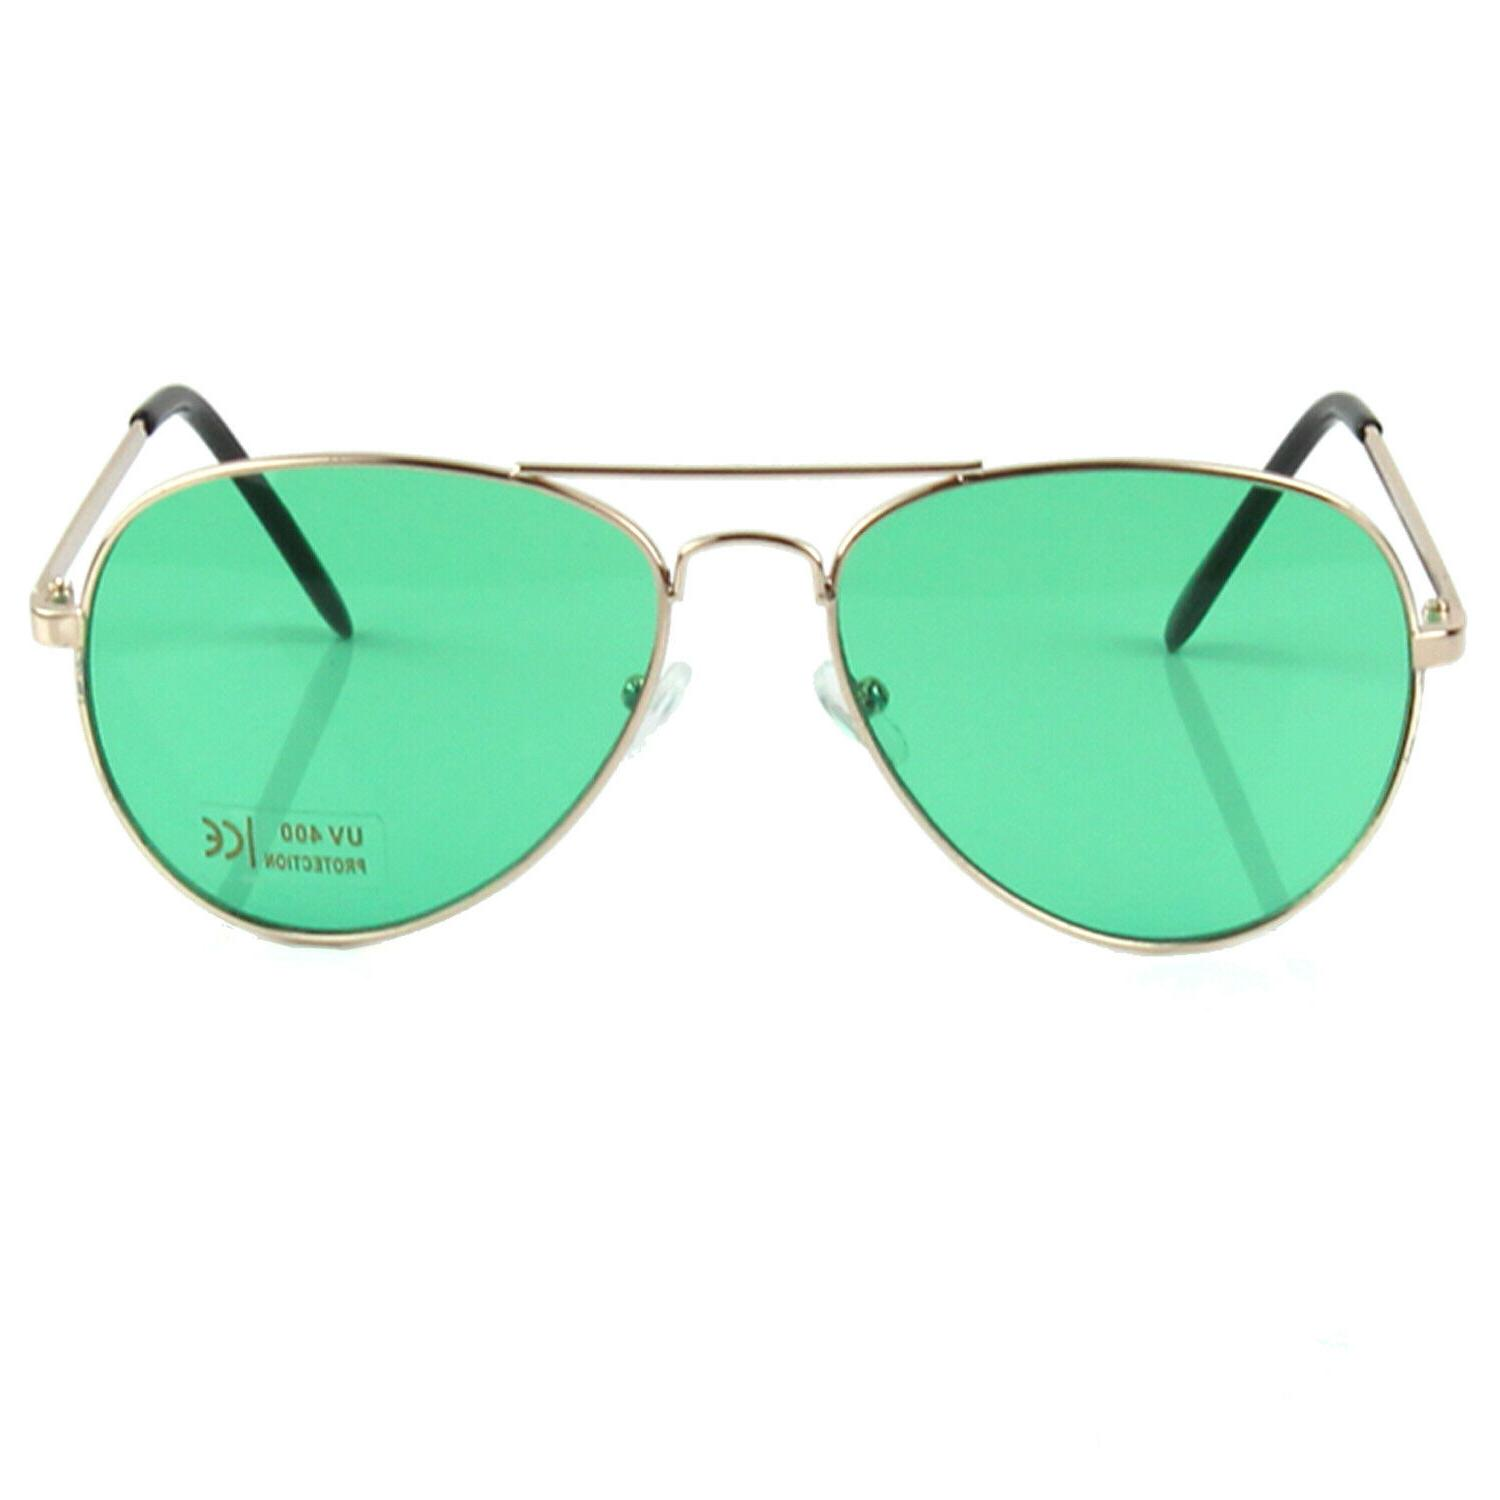 New Sunglasses Frame Gold Light Pilot